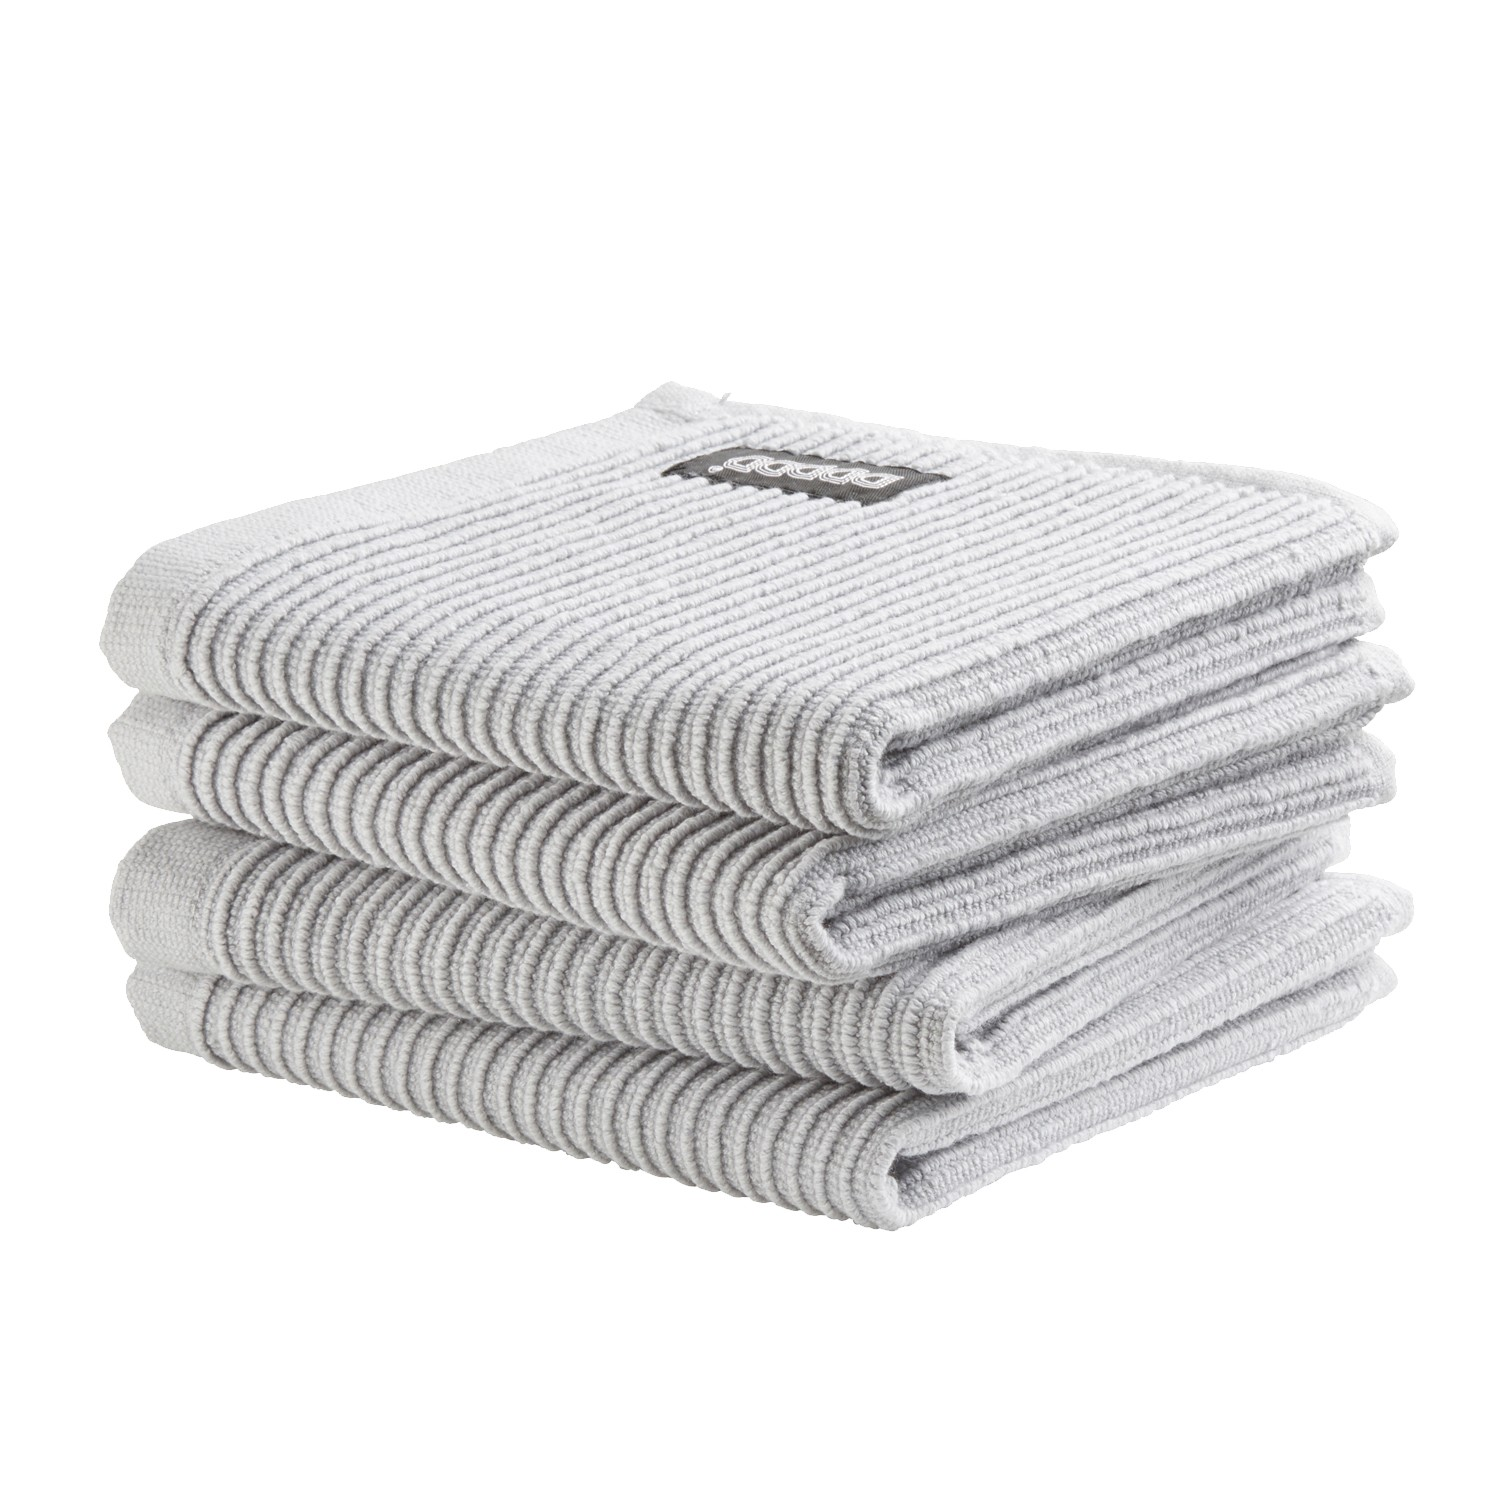 Vaatdoek Basic Clean | Neutral light grey | 30 x 30 cm